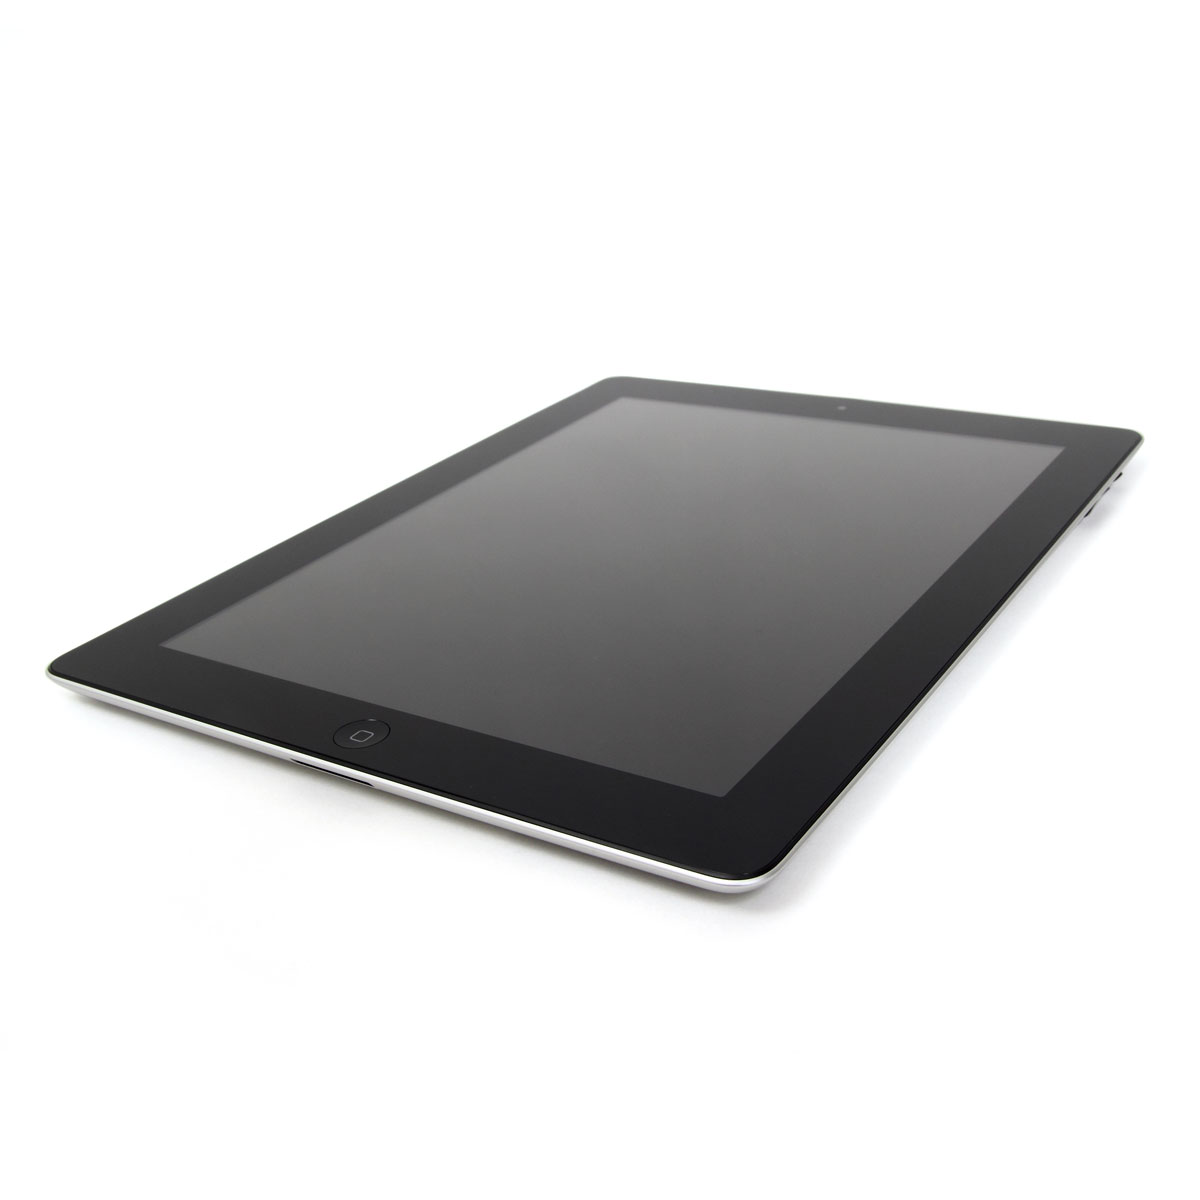 apple ipad 2 wi fi 64 go noir mc916nf a achat vente tablette tactile sur. Black Bedroom Furniture Sets. Home Design Ideas